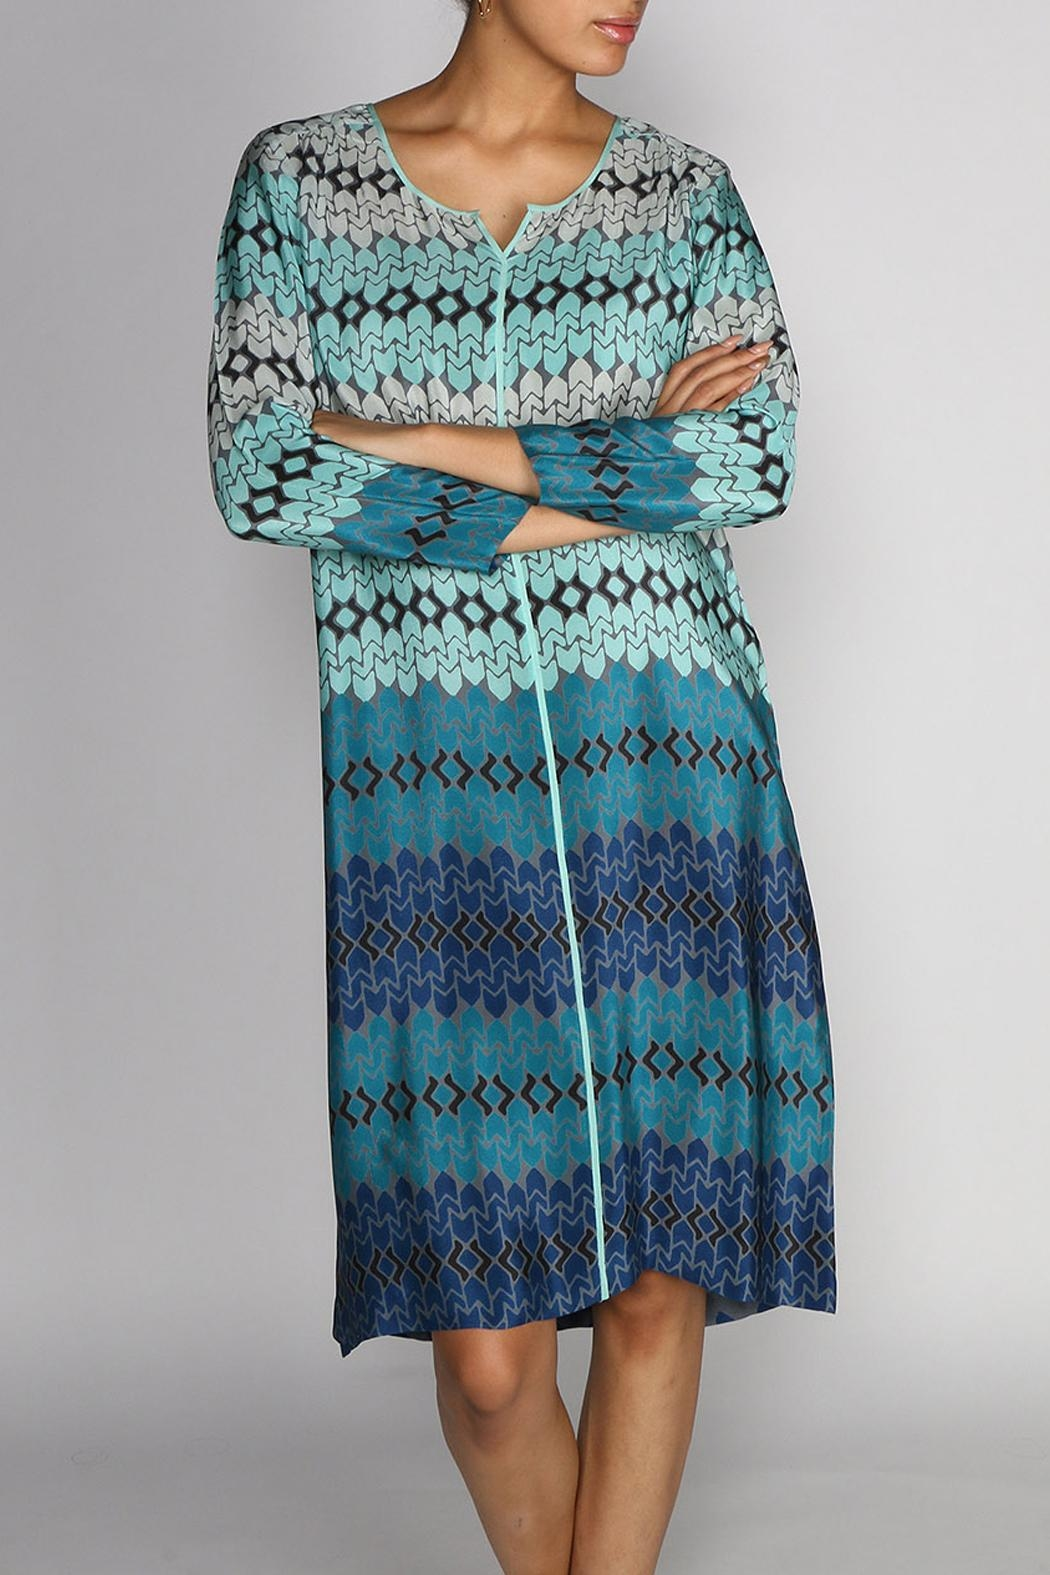 Rasa Teal Star Tunic Dress - Main Image